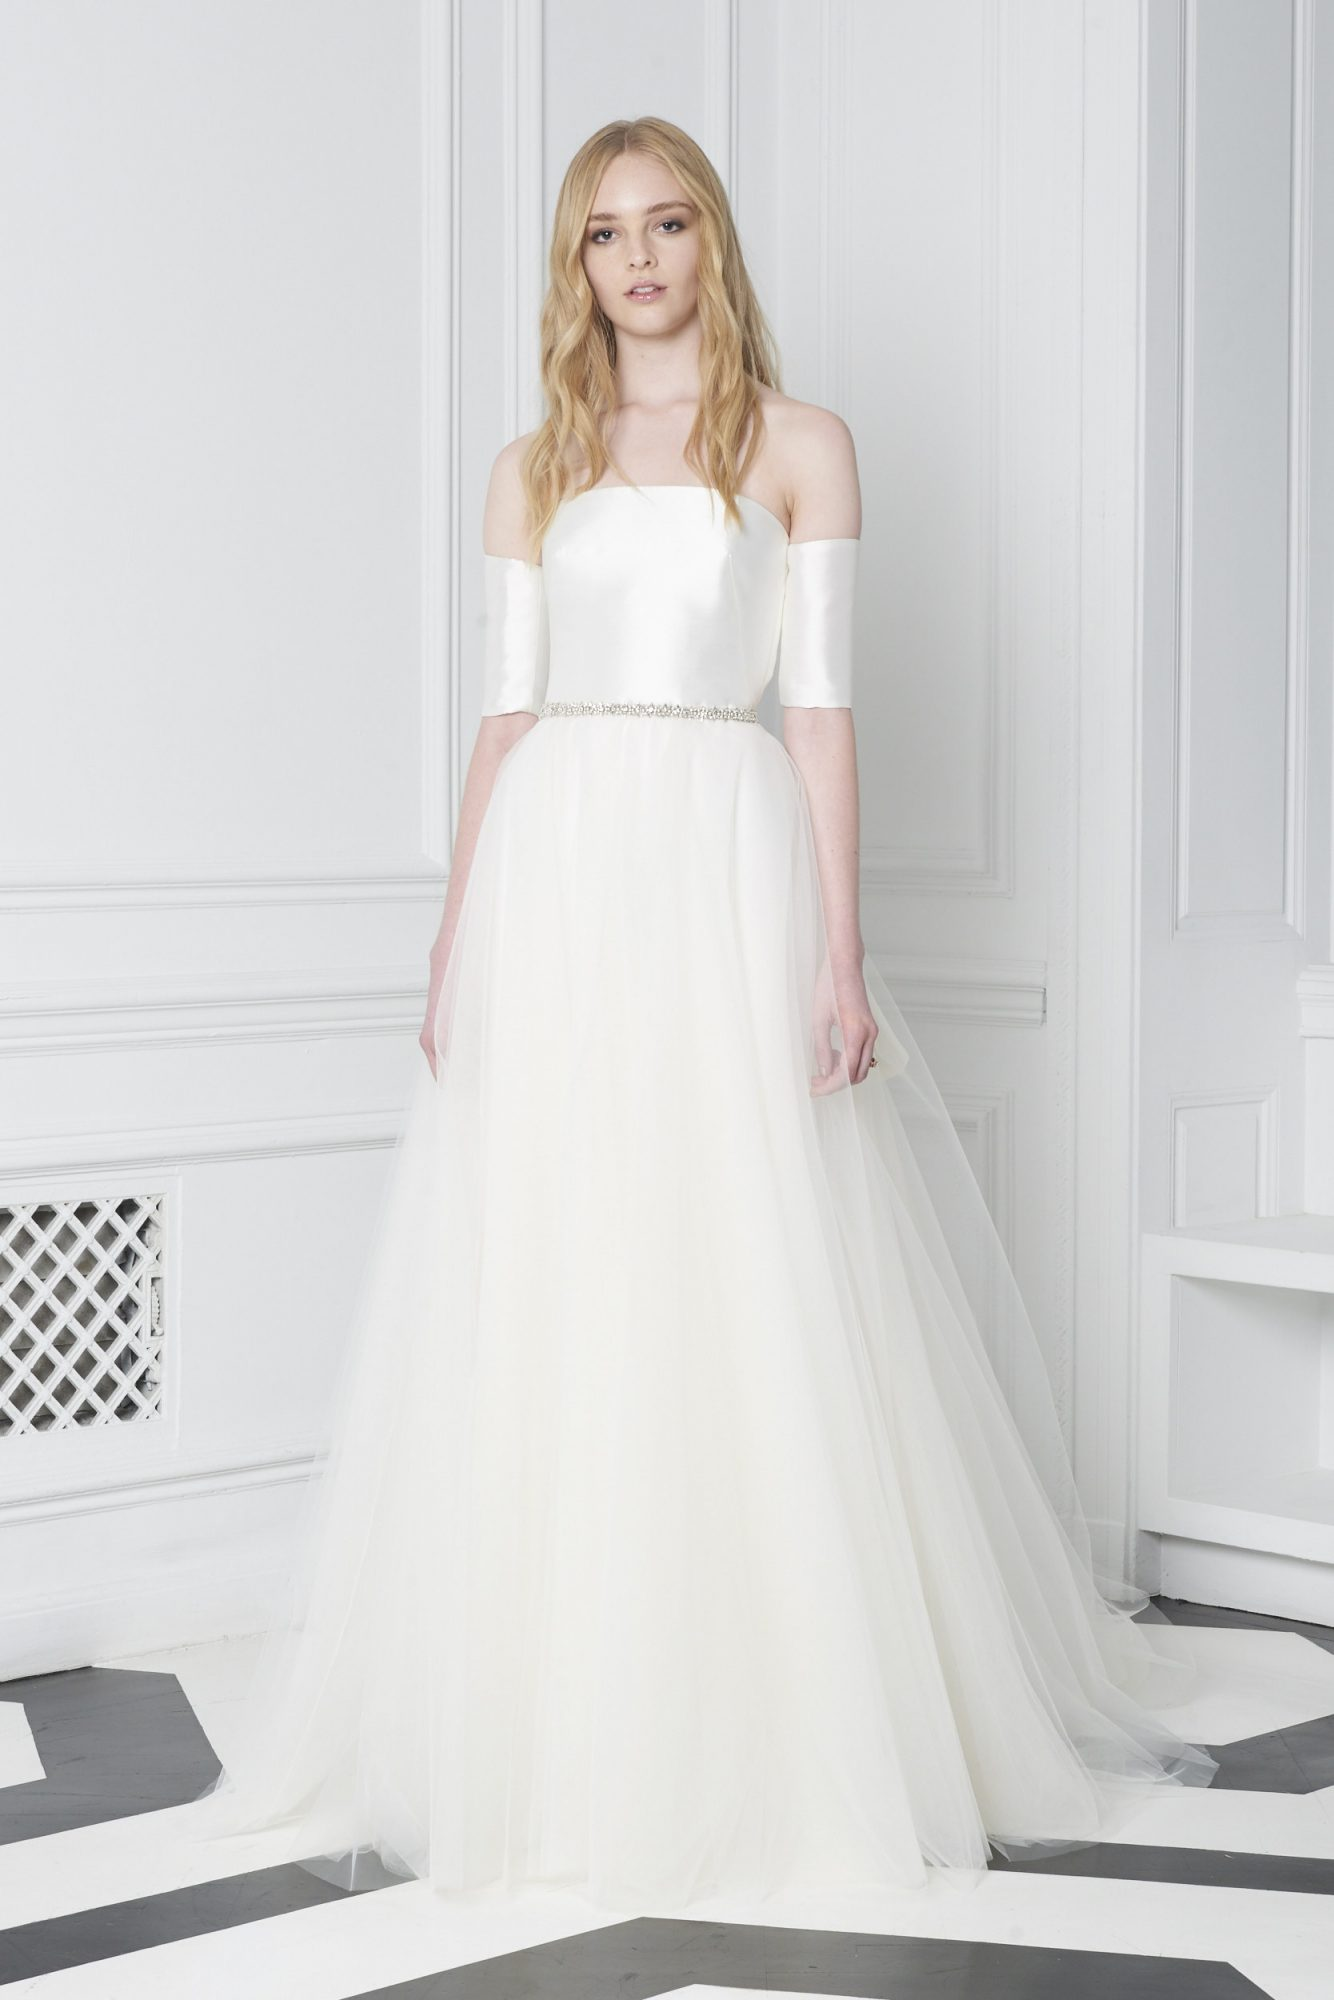 Monique Lhuillier Bliss Fall 2018 Off-the-Shoulder Ball Gown with Full Tulle Skirt